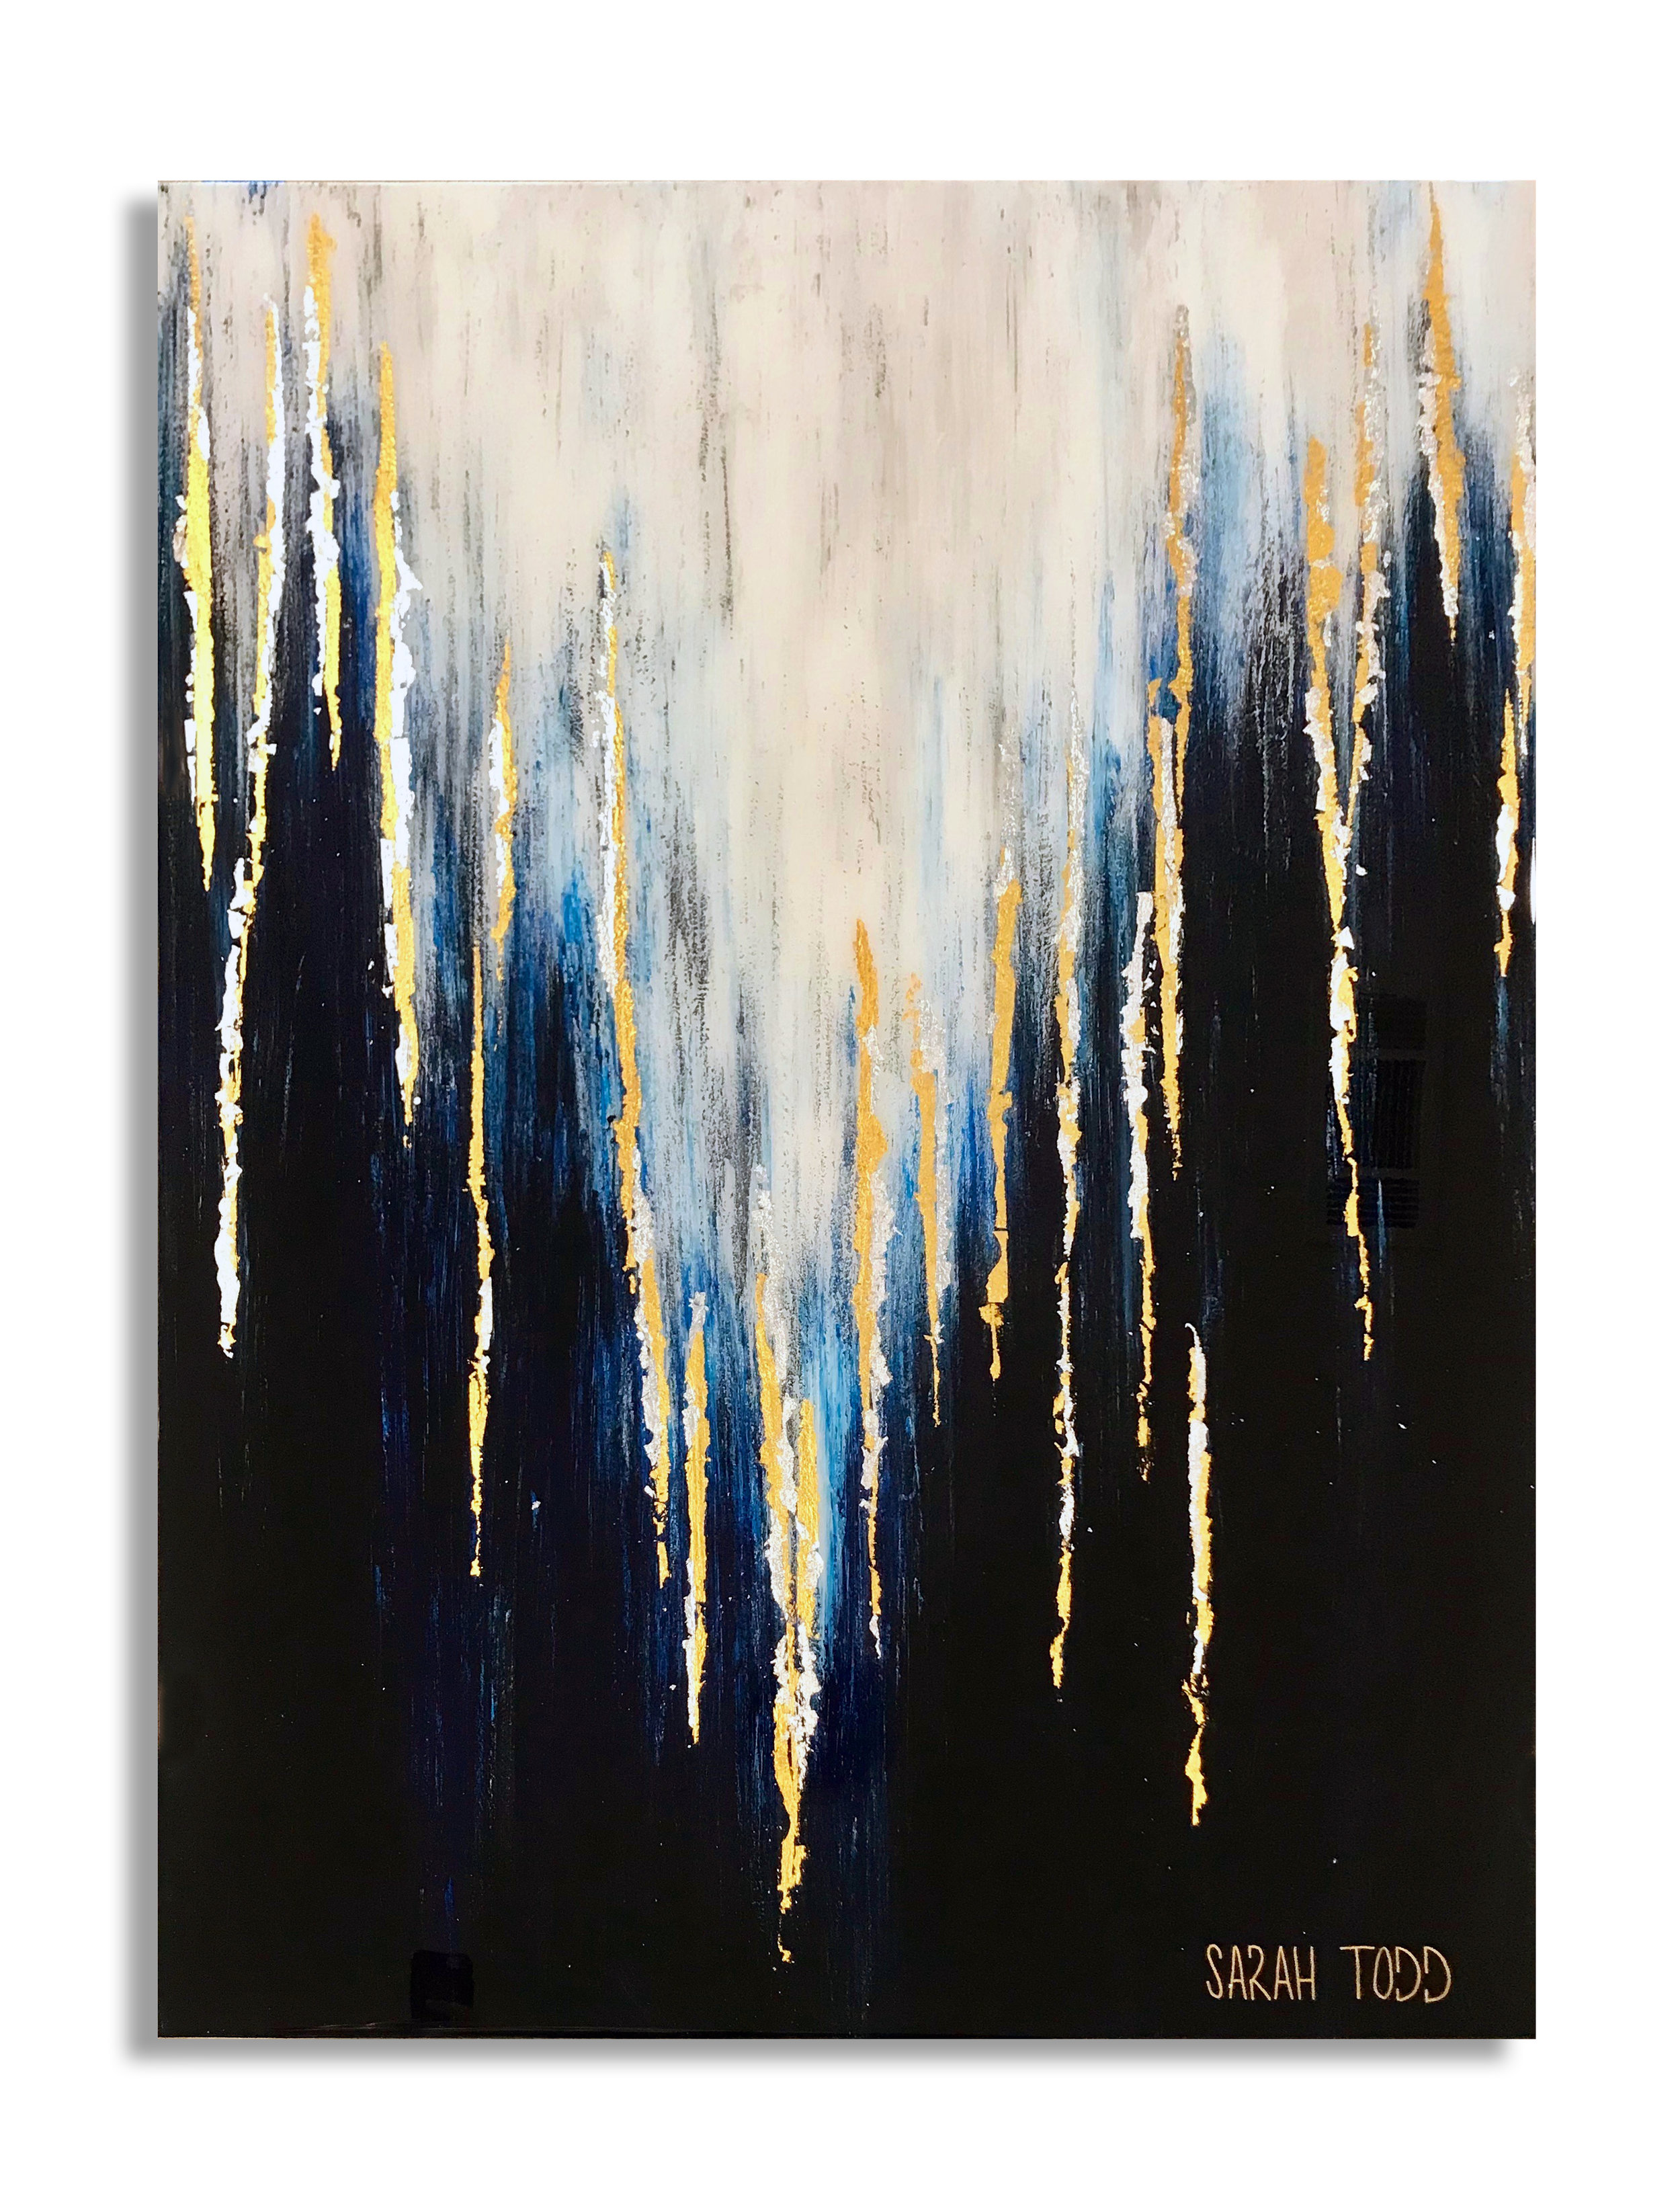 "OCEANS APART  AVAILABLE FOR PURCHASE @ Sarah Todd Studio 40""H x 30""W  24K Gold Leaf, Genuine Silver Leaf, Acrylic and Resin"